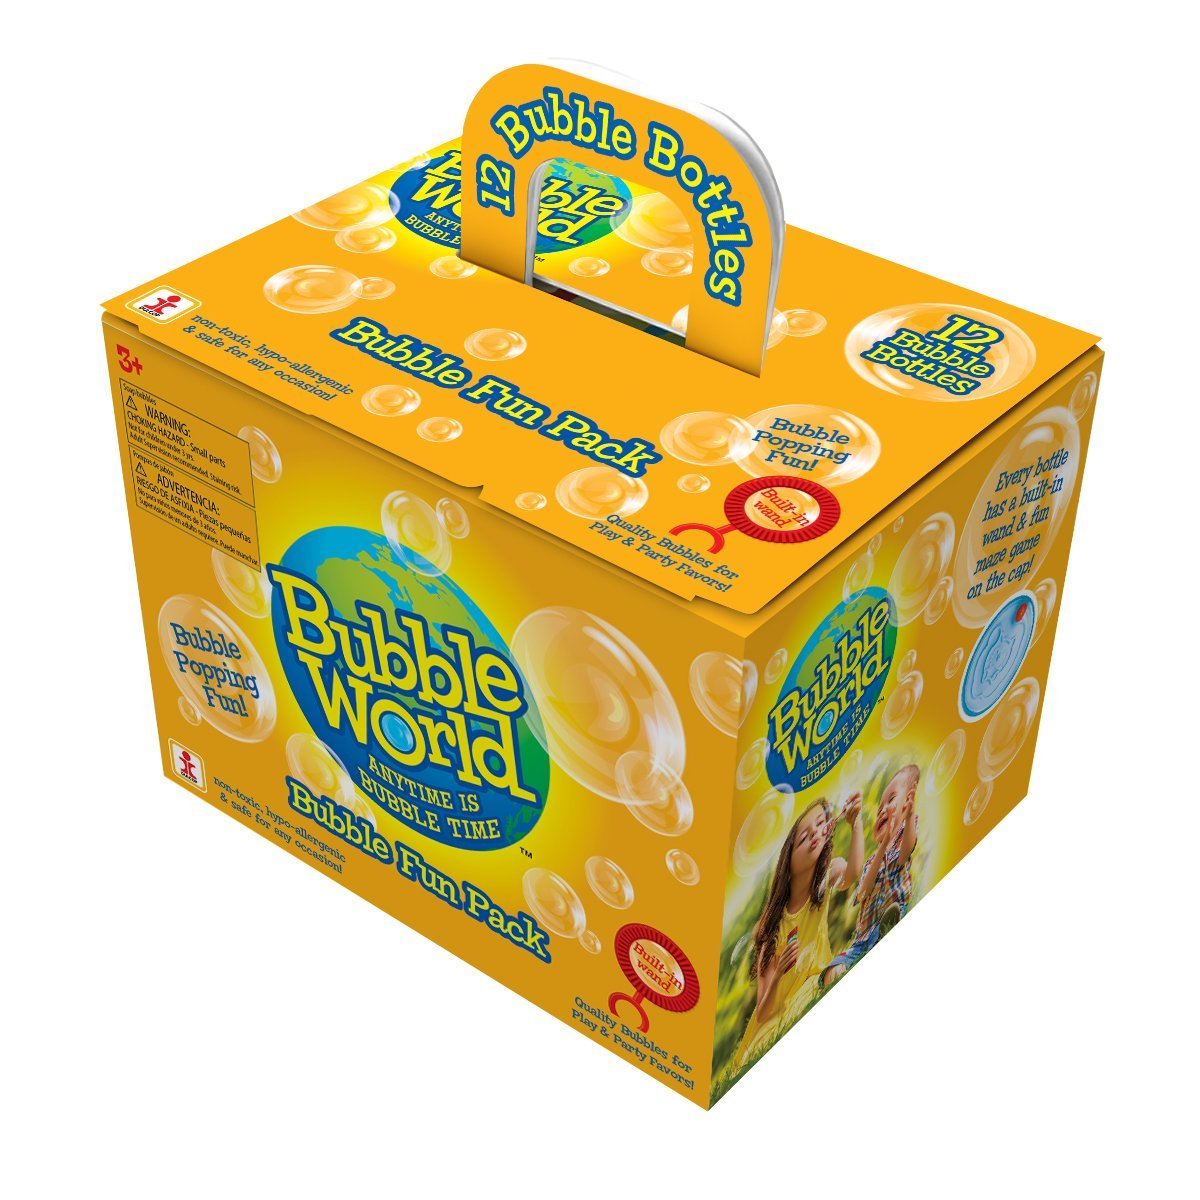 Bubble World Fun Bubble Bottles (12 Pack) Bubbles for Kids – Non-Toxic Bubbles with Built-In Wand for Mess-Free Play! Dulcop America Inc. 703100300